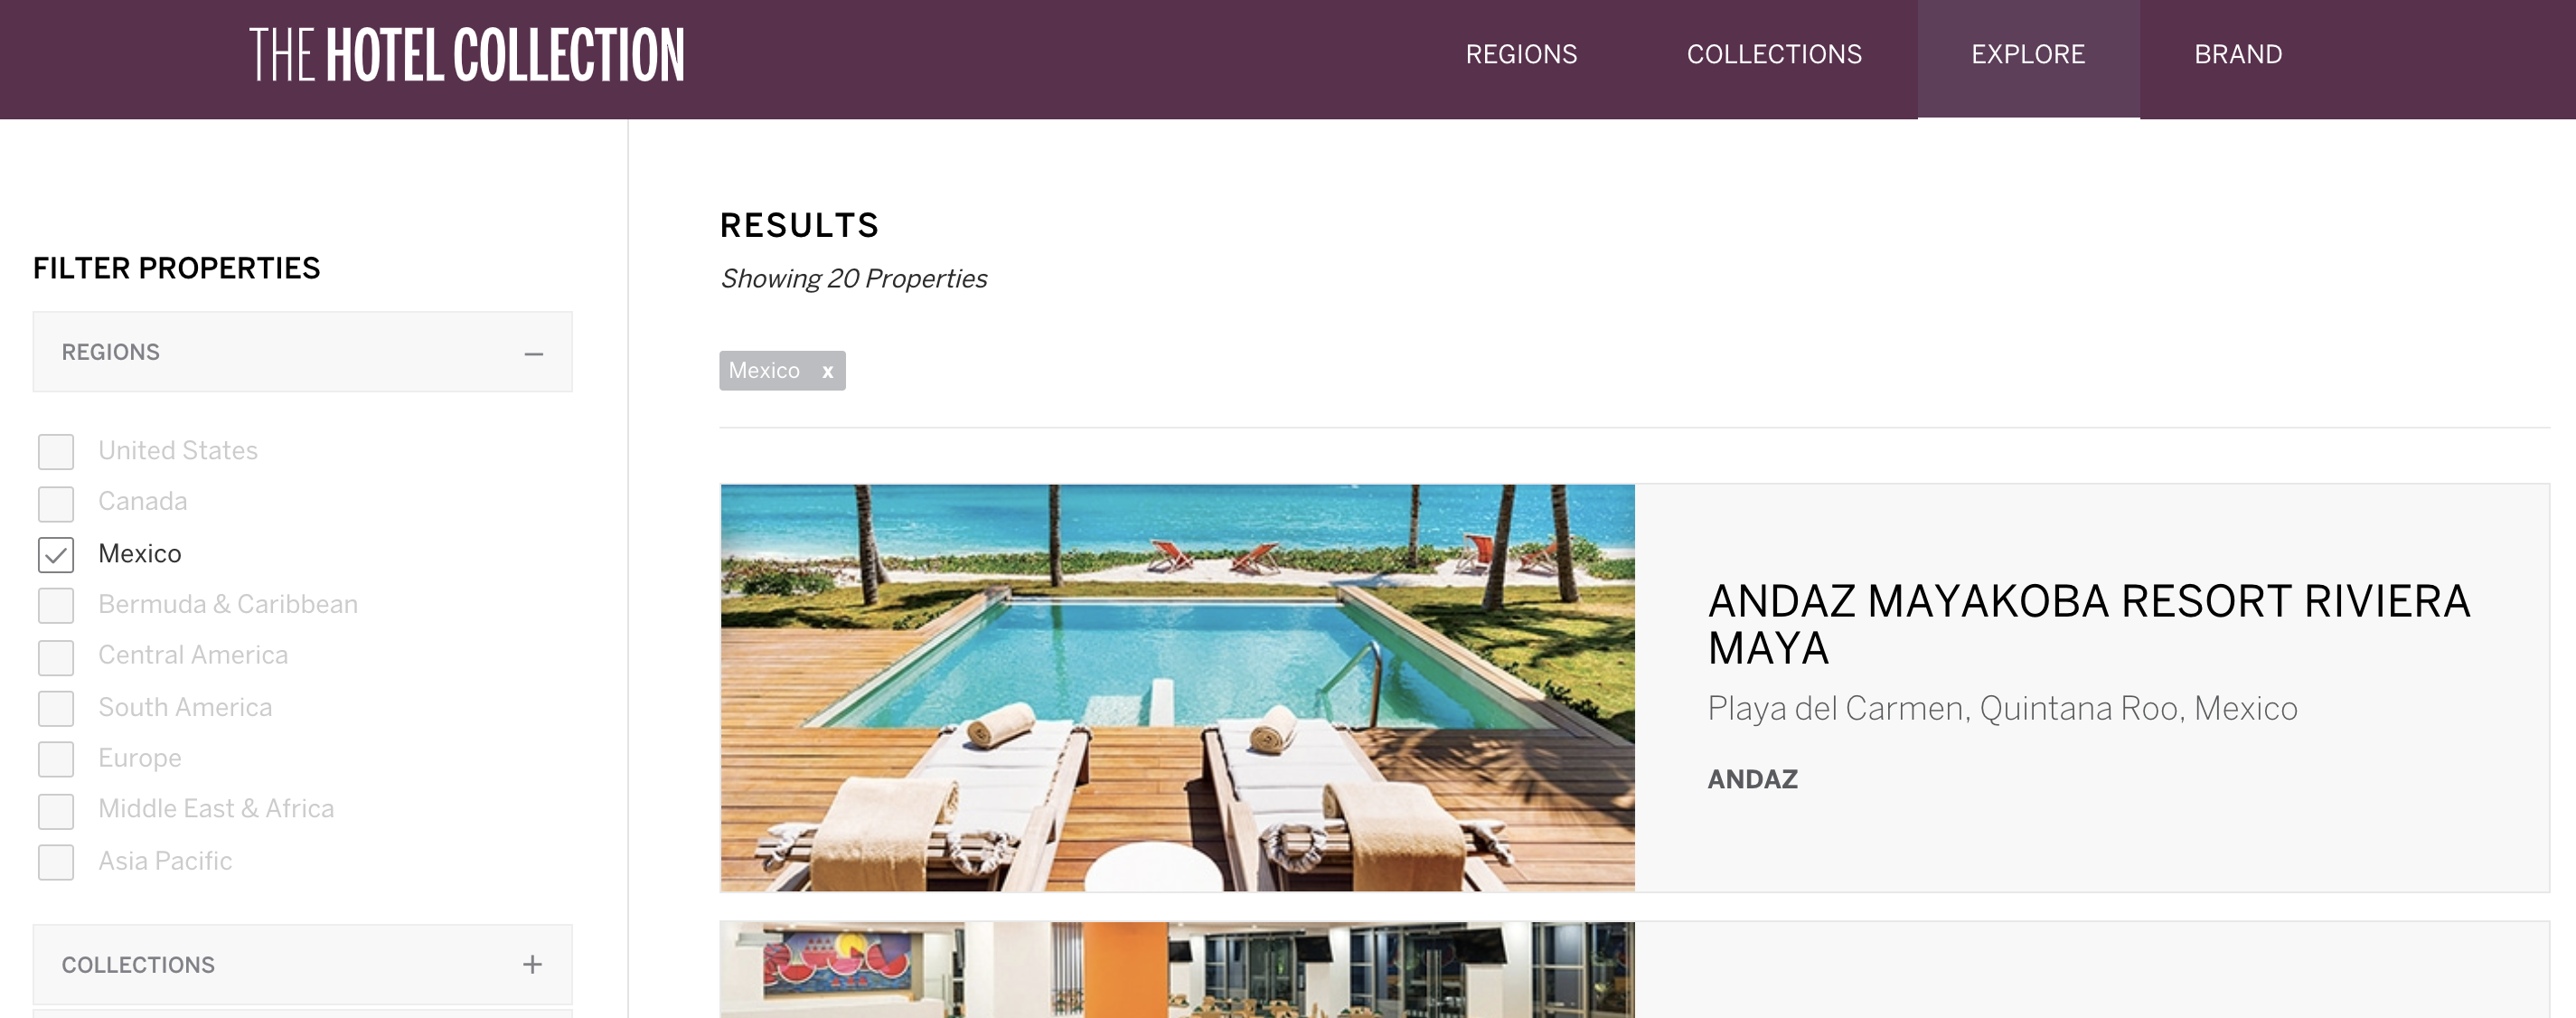 The Hotel Collection - Andaz Mayakoba Resort Riviera Maya booking